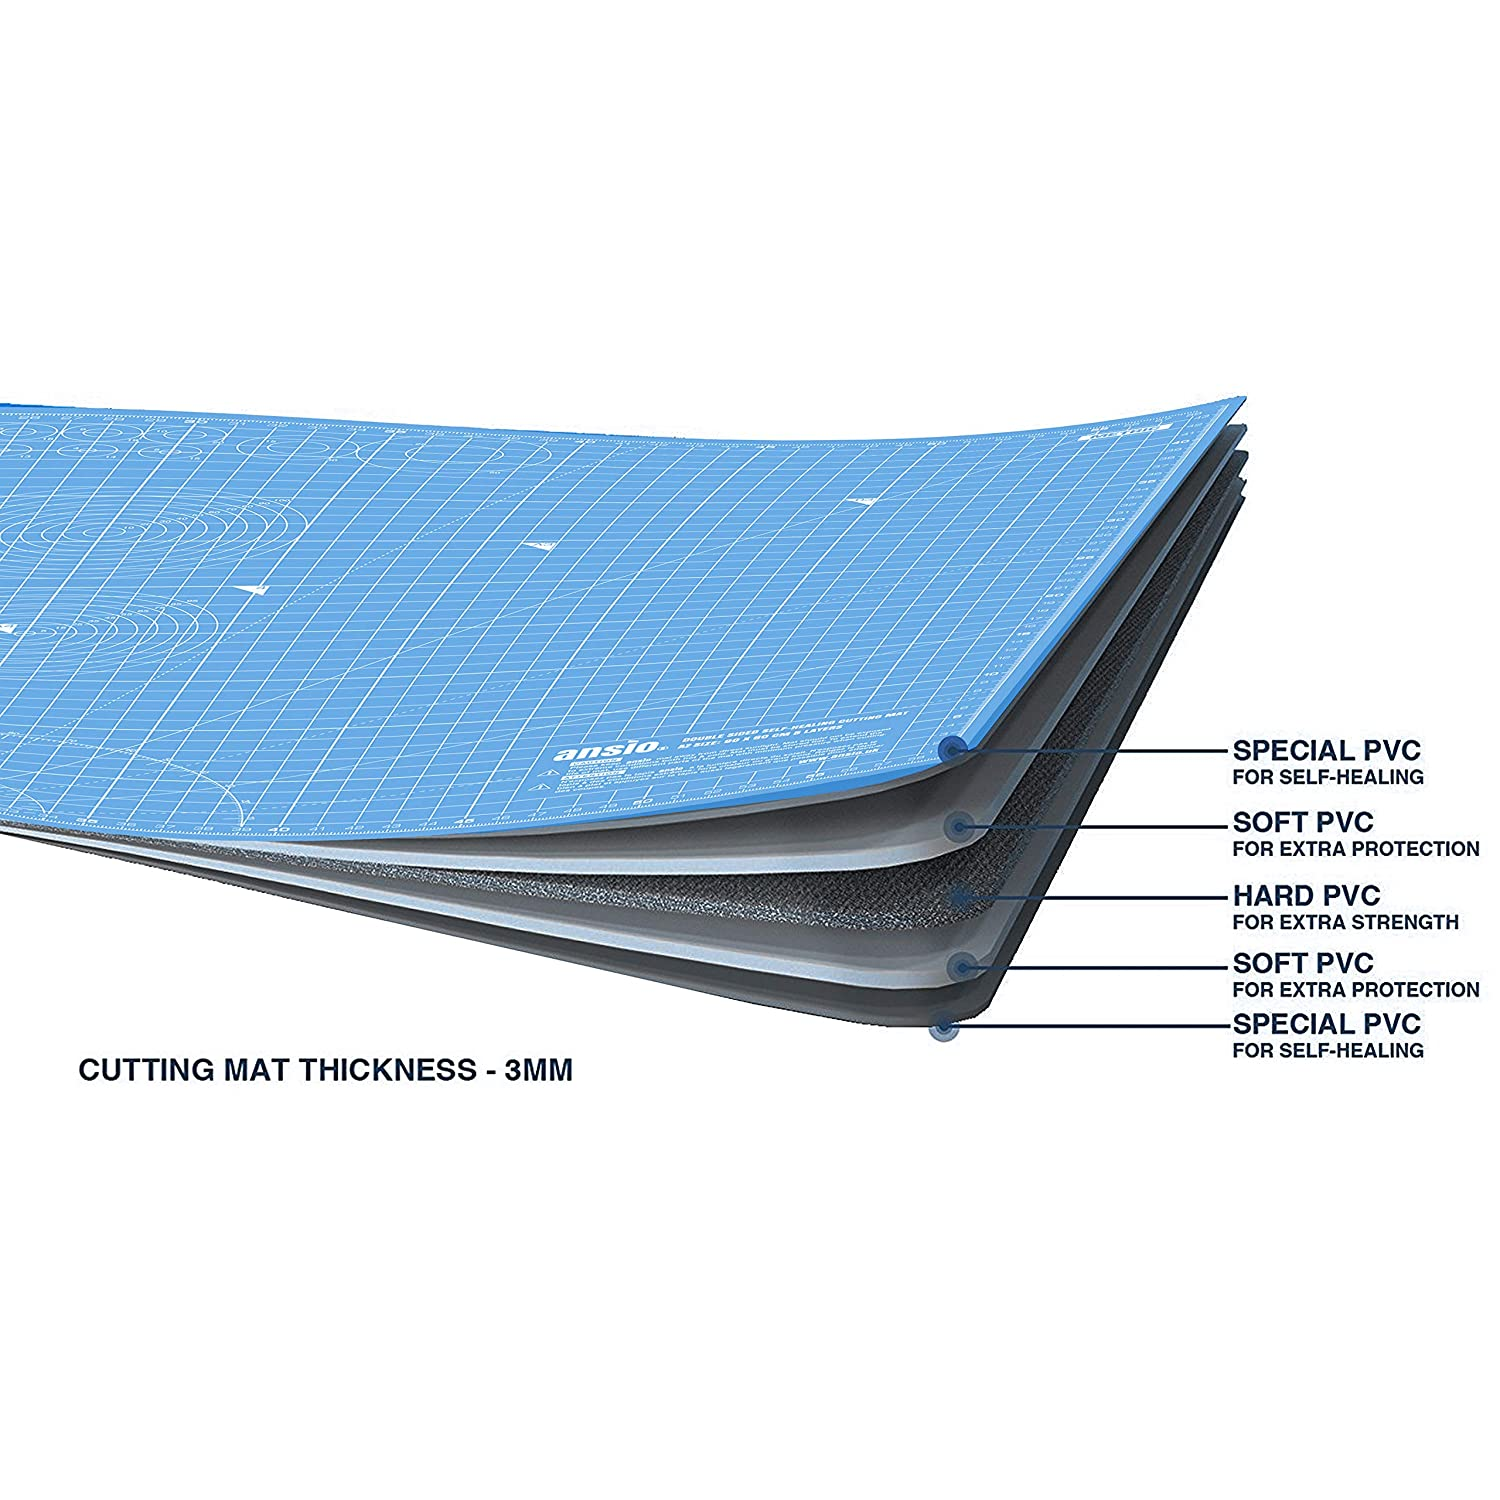 ANSIO A0 Double Sided Self Healing 5 Layers Cutting Mat Imperial/Metric 46 Inch x 33.5 Inch / 118cm x 86cm - True Blue / Sky Blue